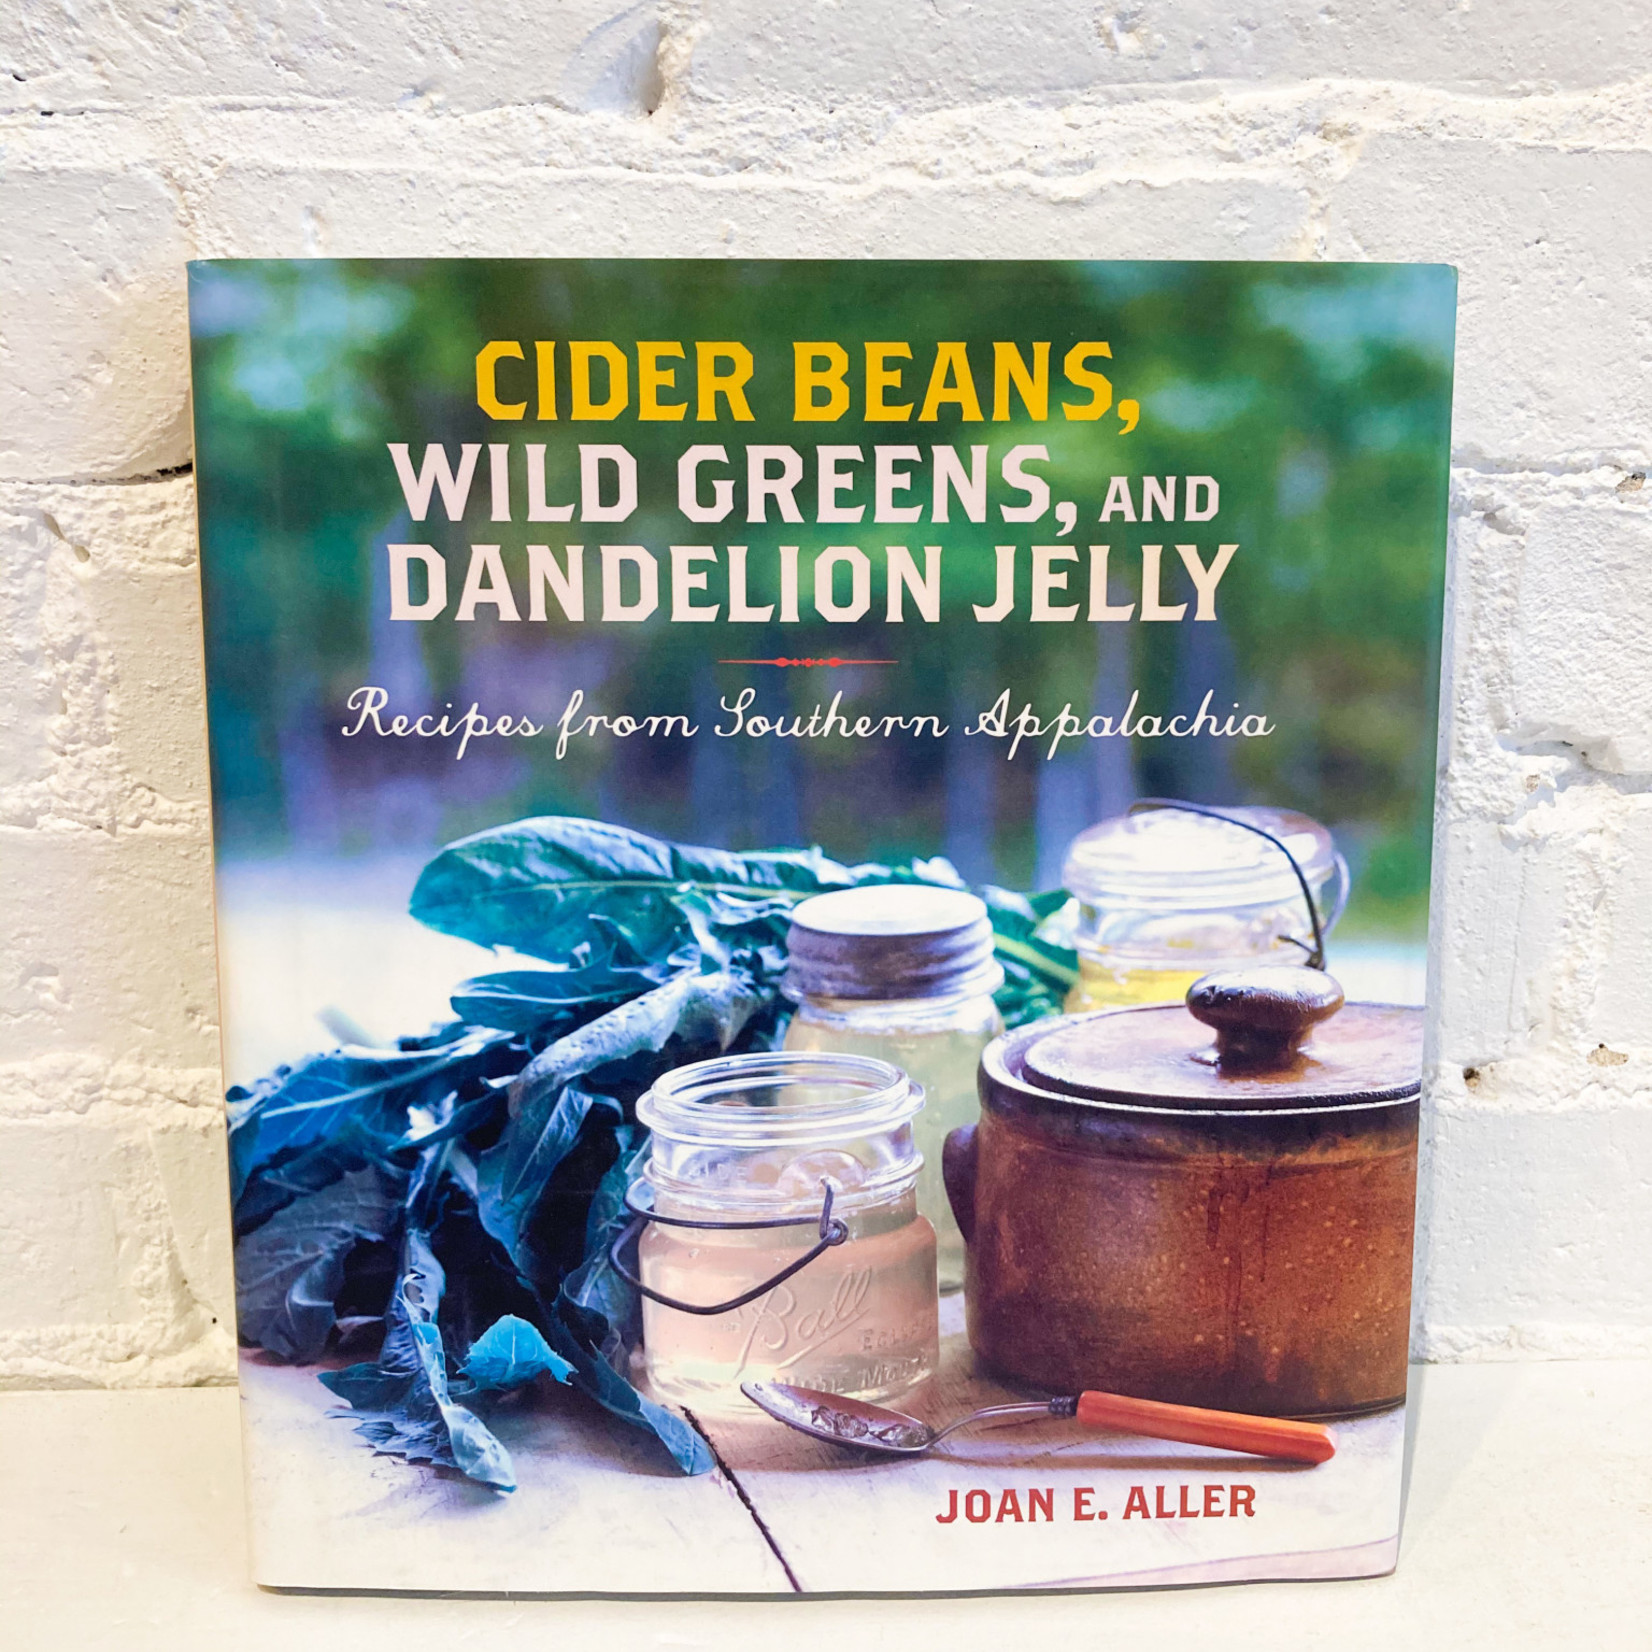 Cider Beans, Wild Greens, and Dandelion Jelly by Joan E. Aller